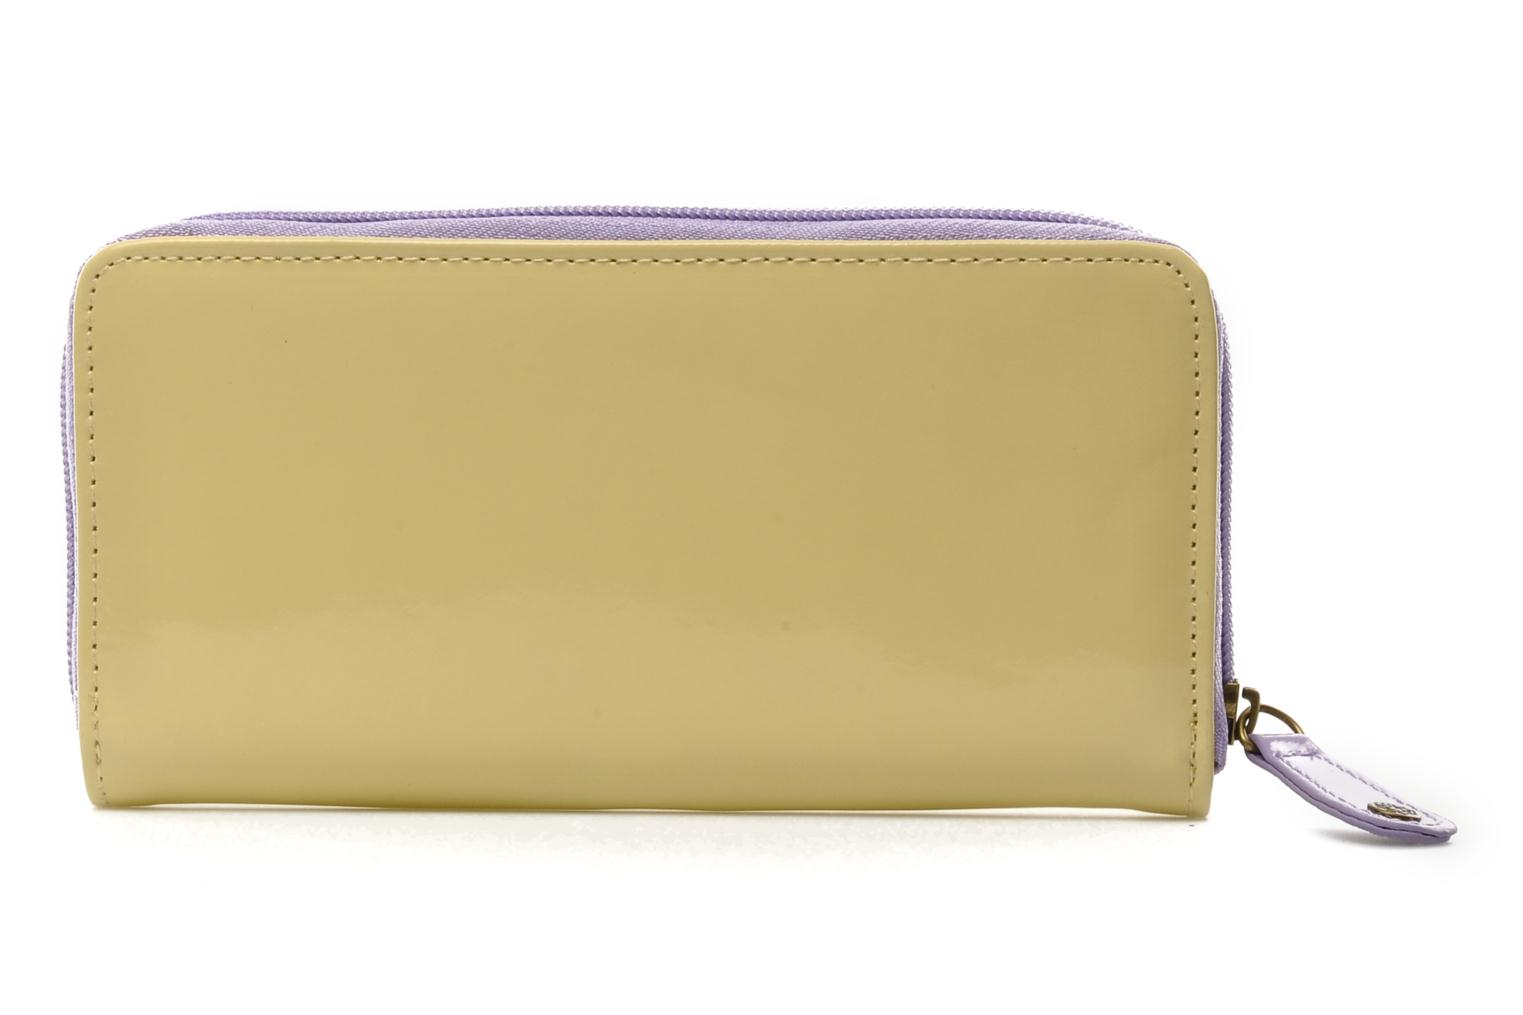 NOELLA PURSE LIGHT PURPLE AS